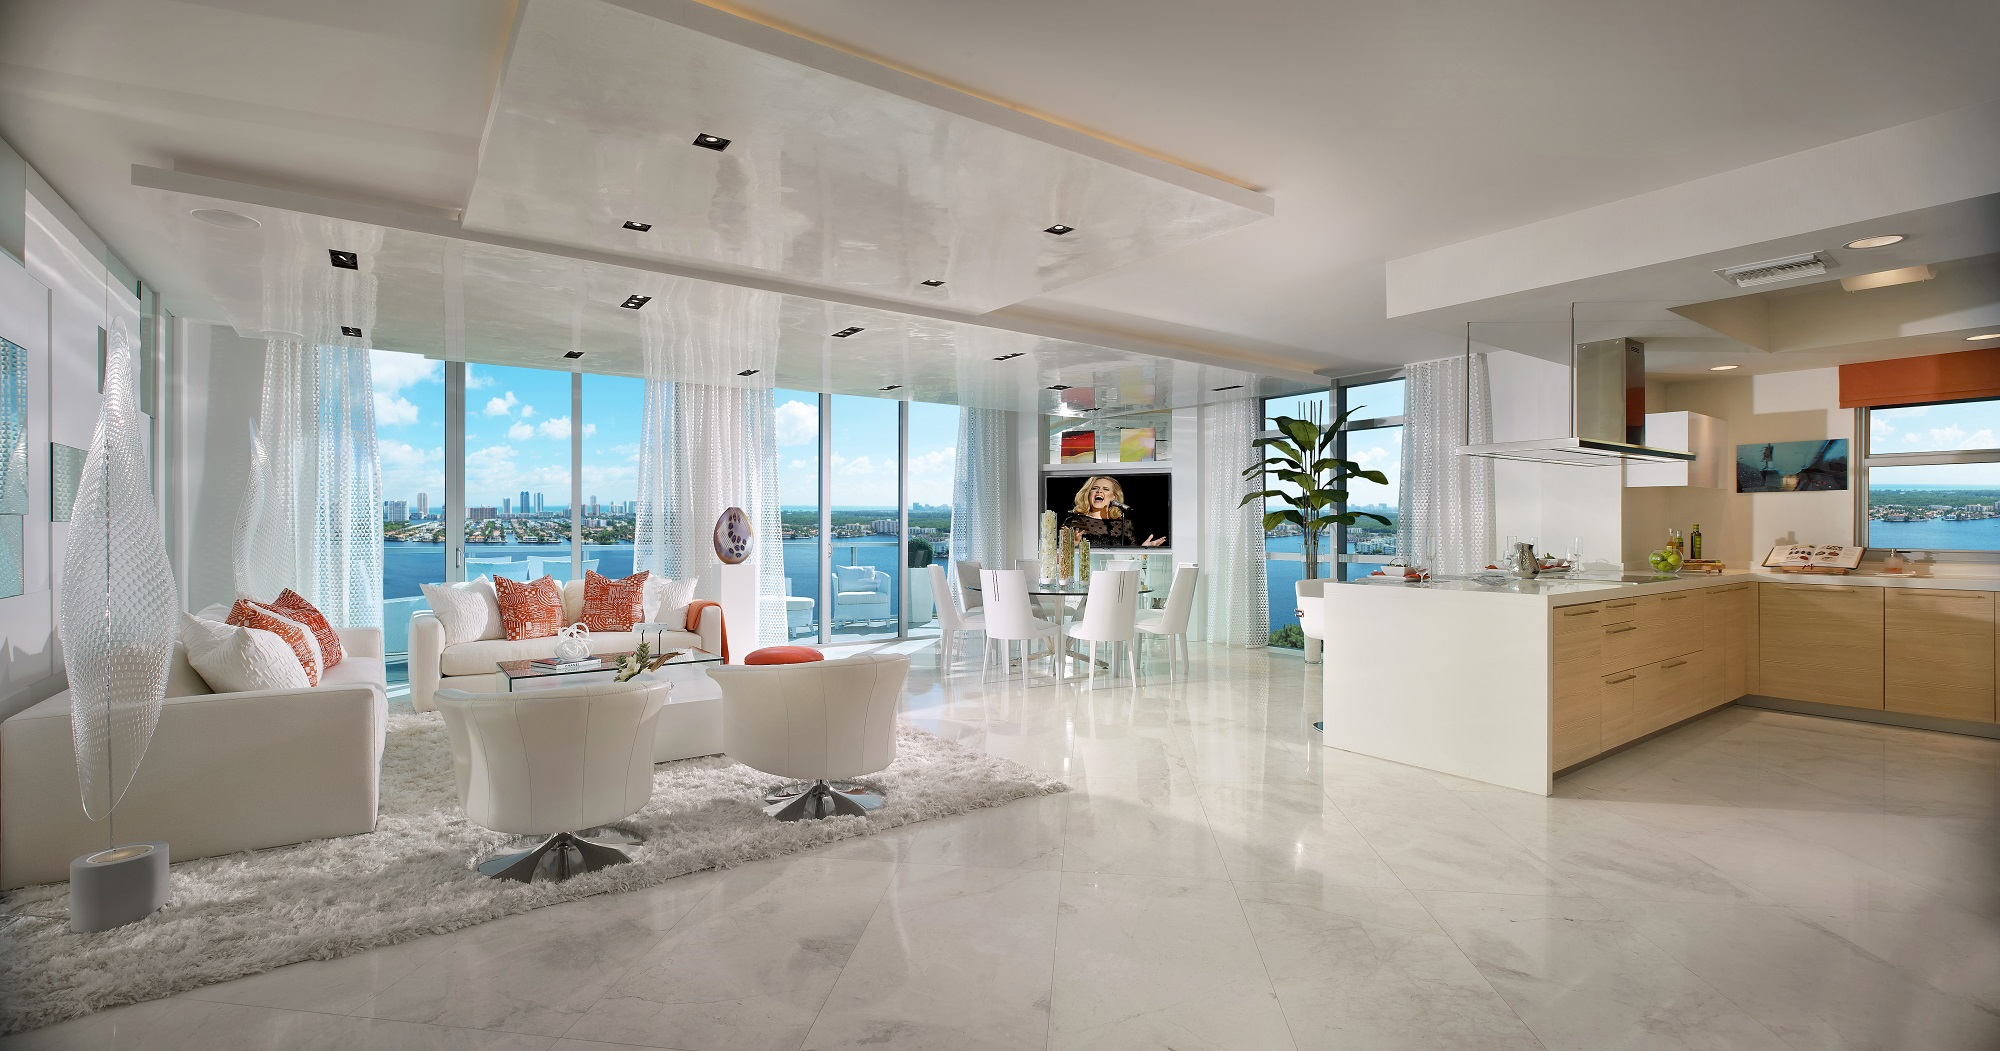 Luxury South Florida Condo Overcomes Foreclosure Zoning